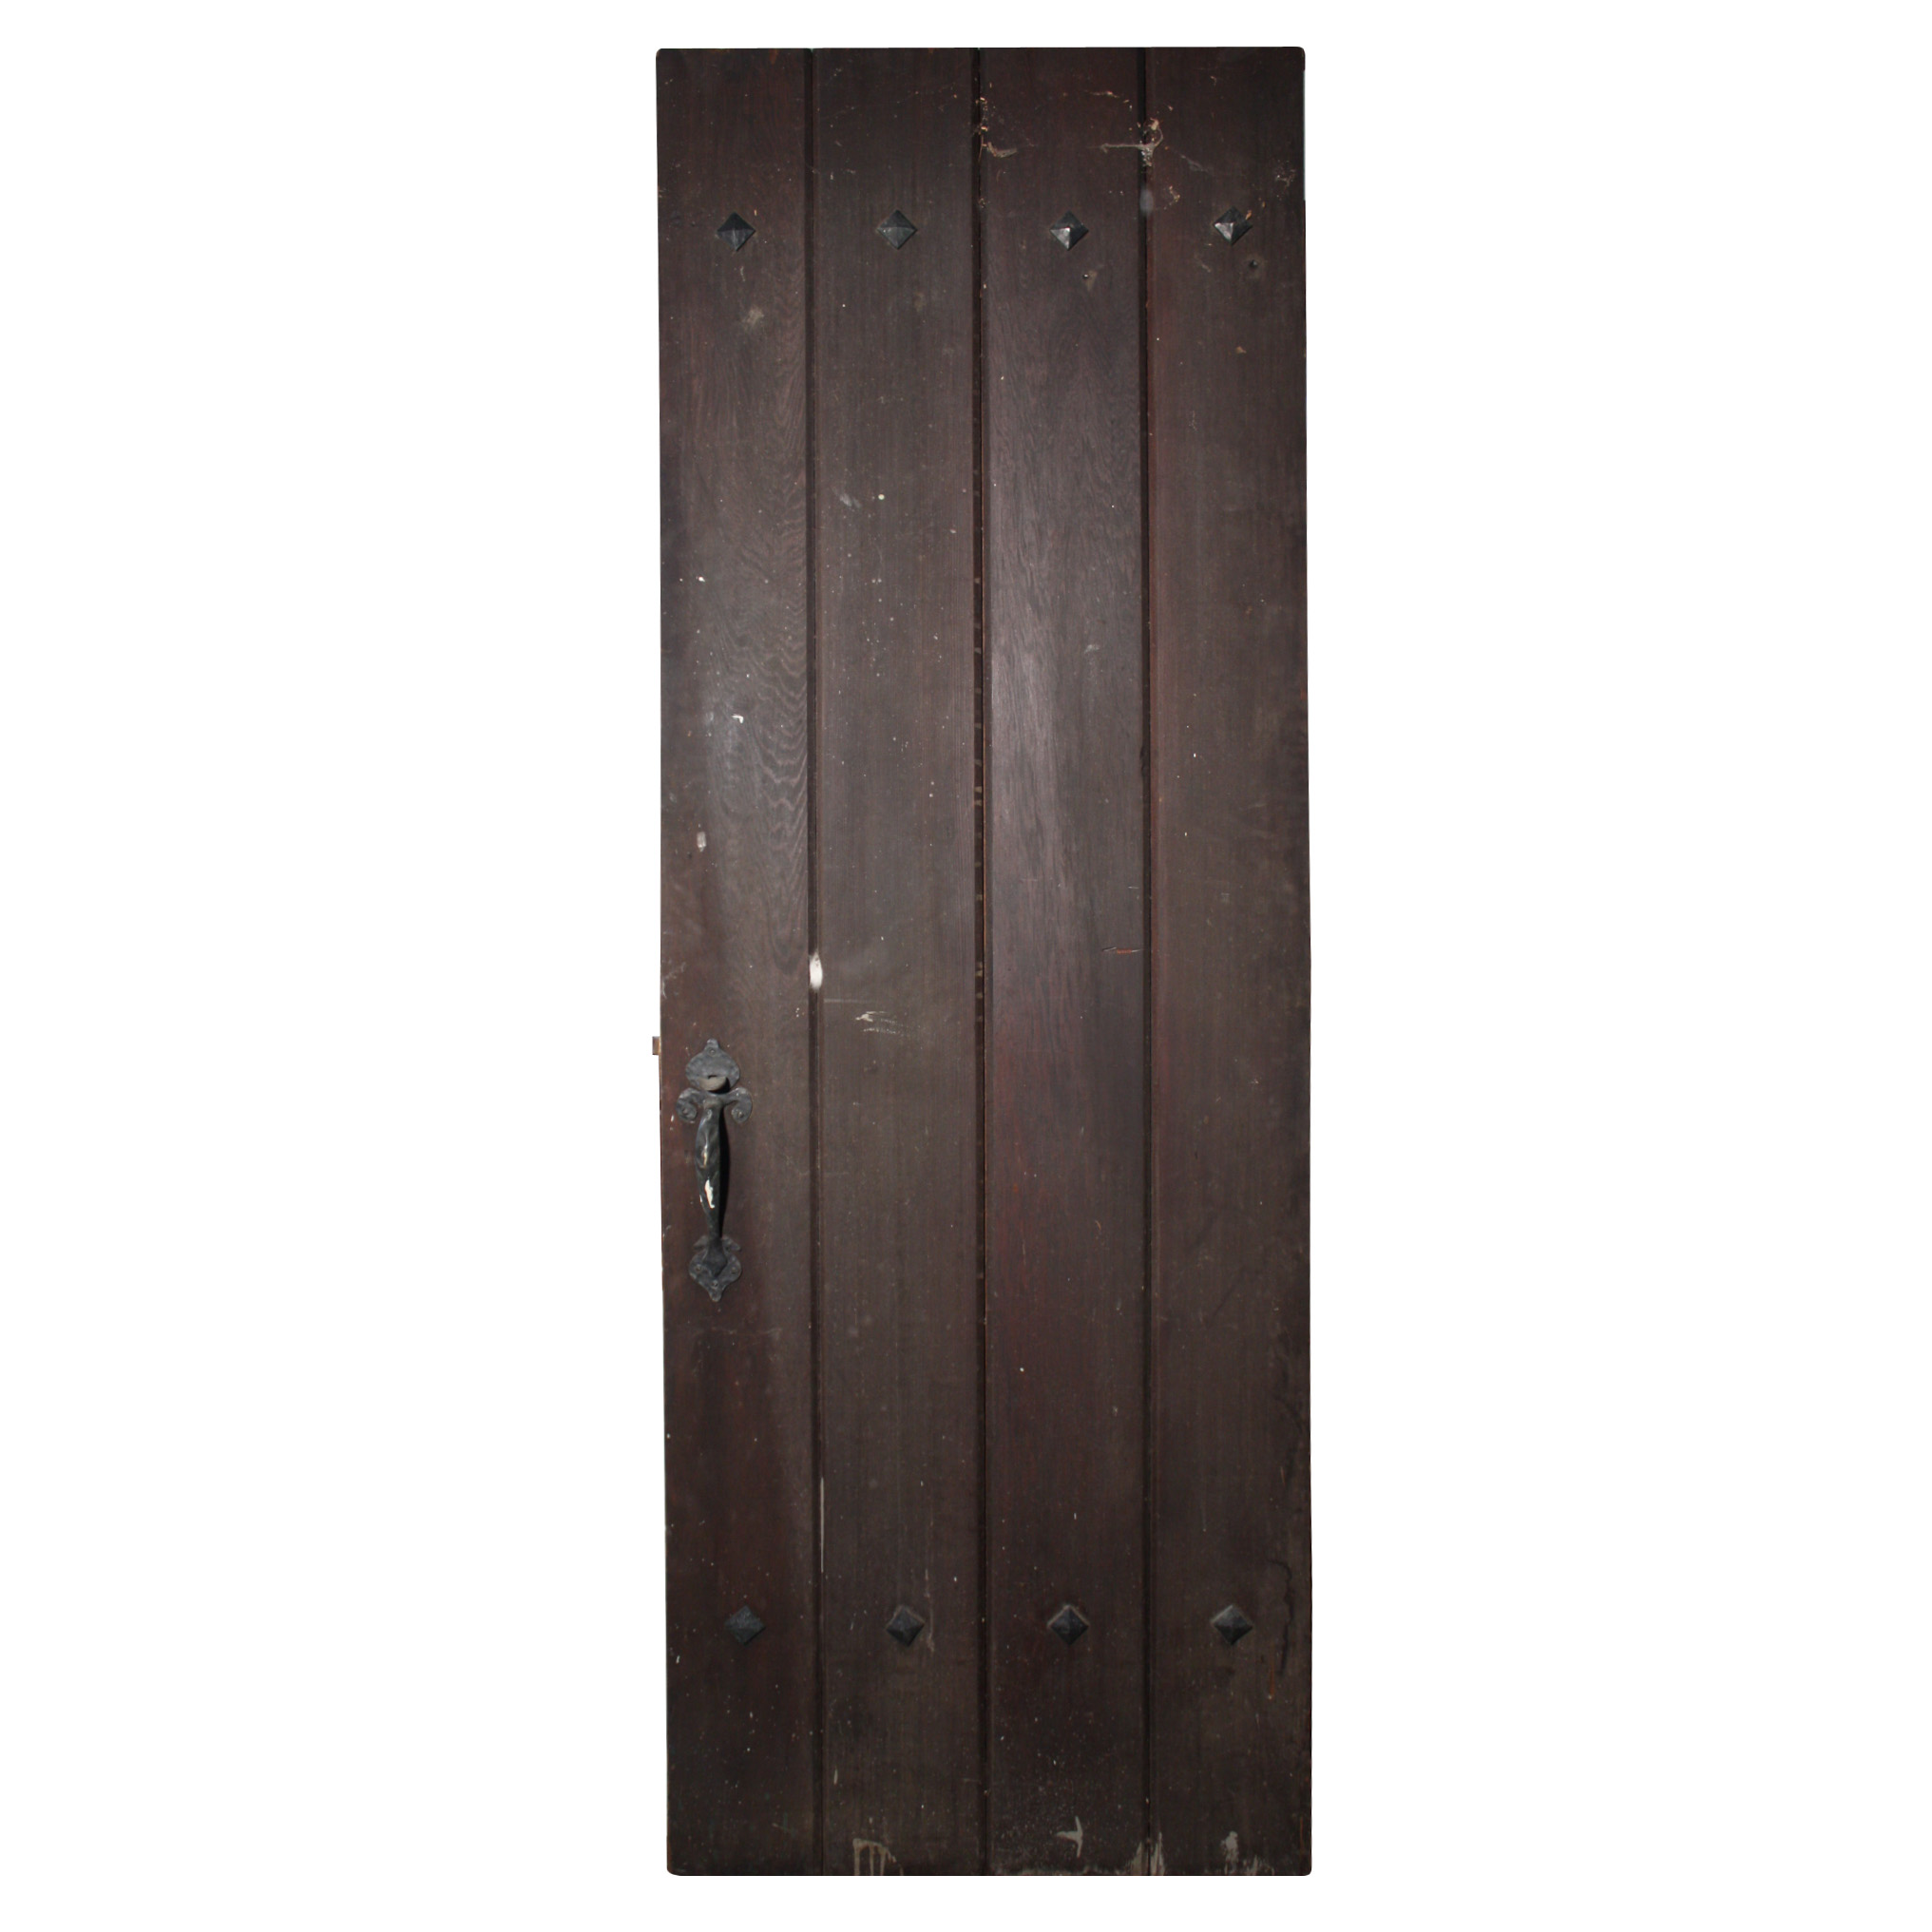 Incredible Salvaged Antique Exterior Plank Door C1920 Ned232 Rw